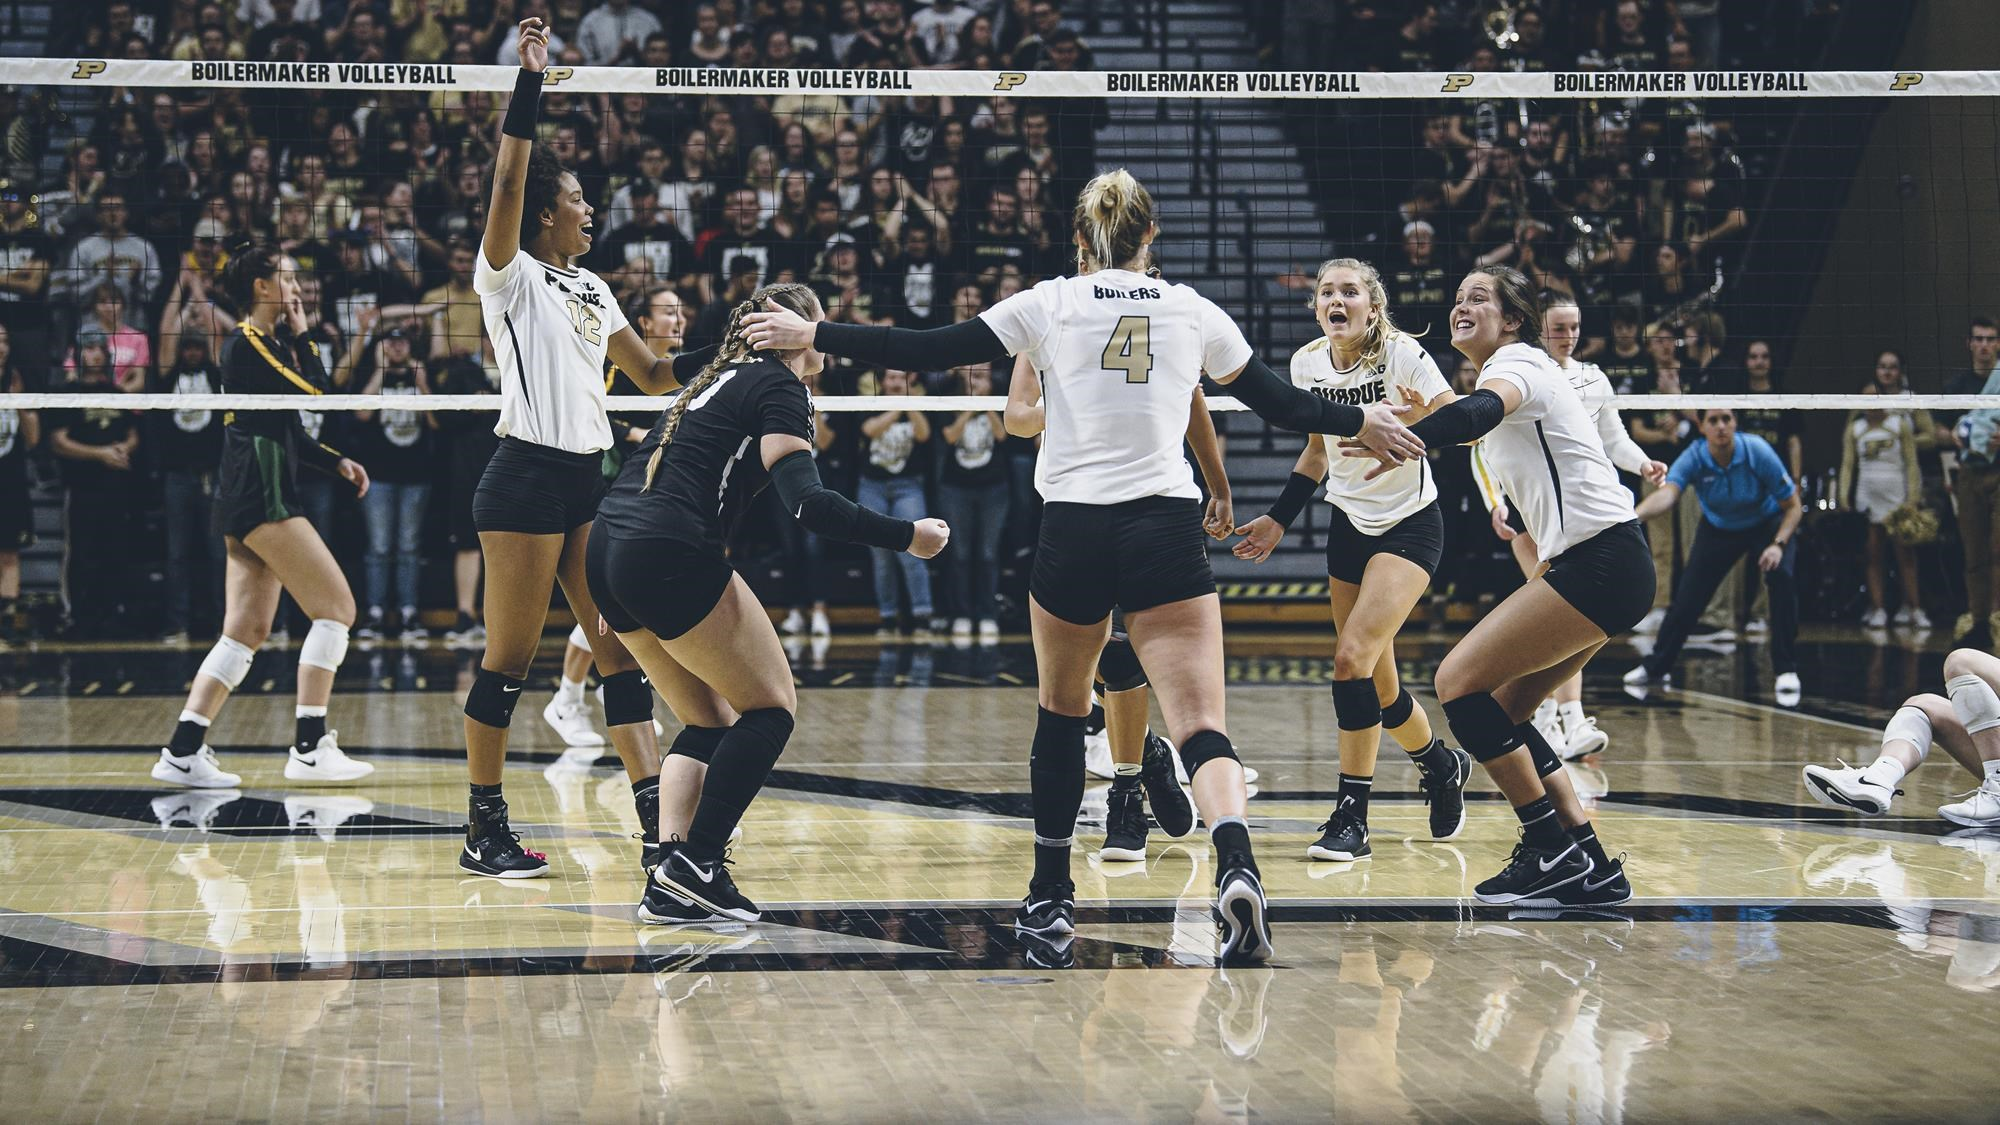 Members of the Purdue volleyball team during a game